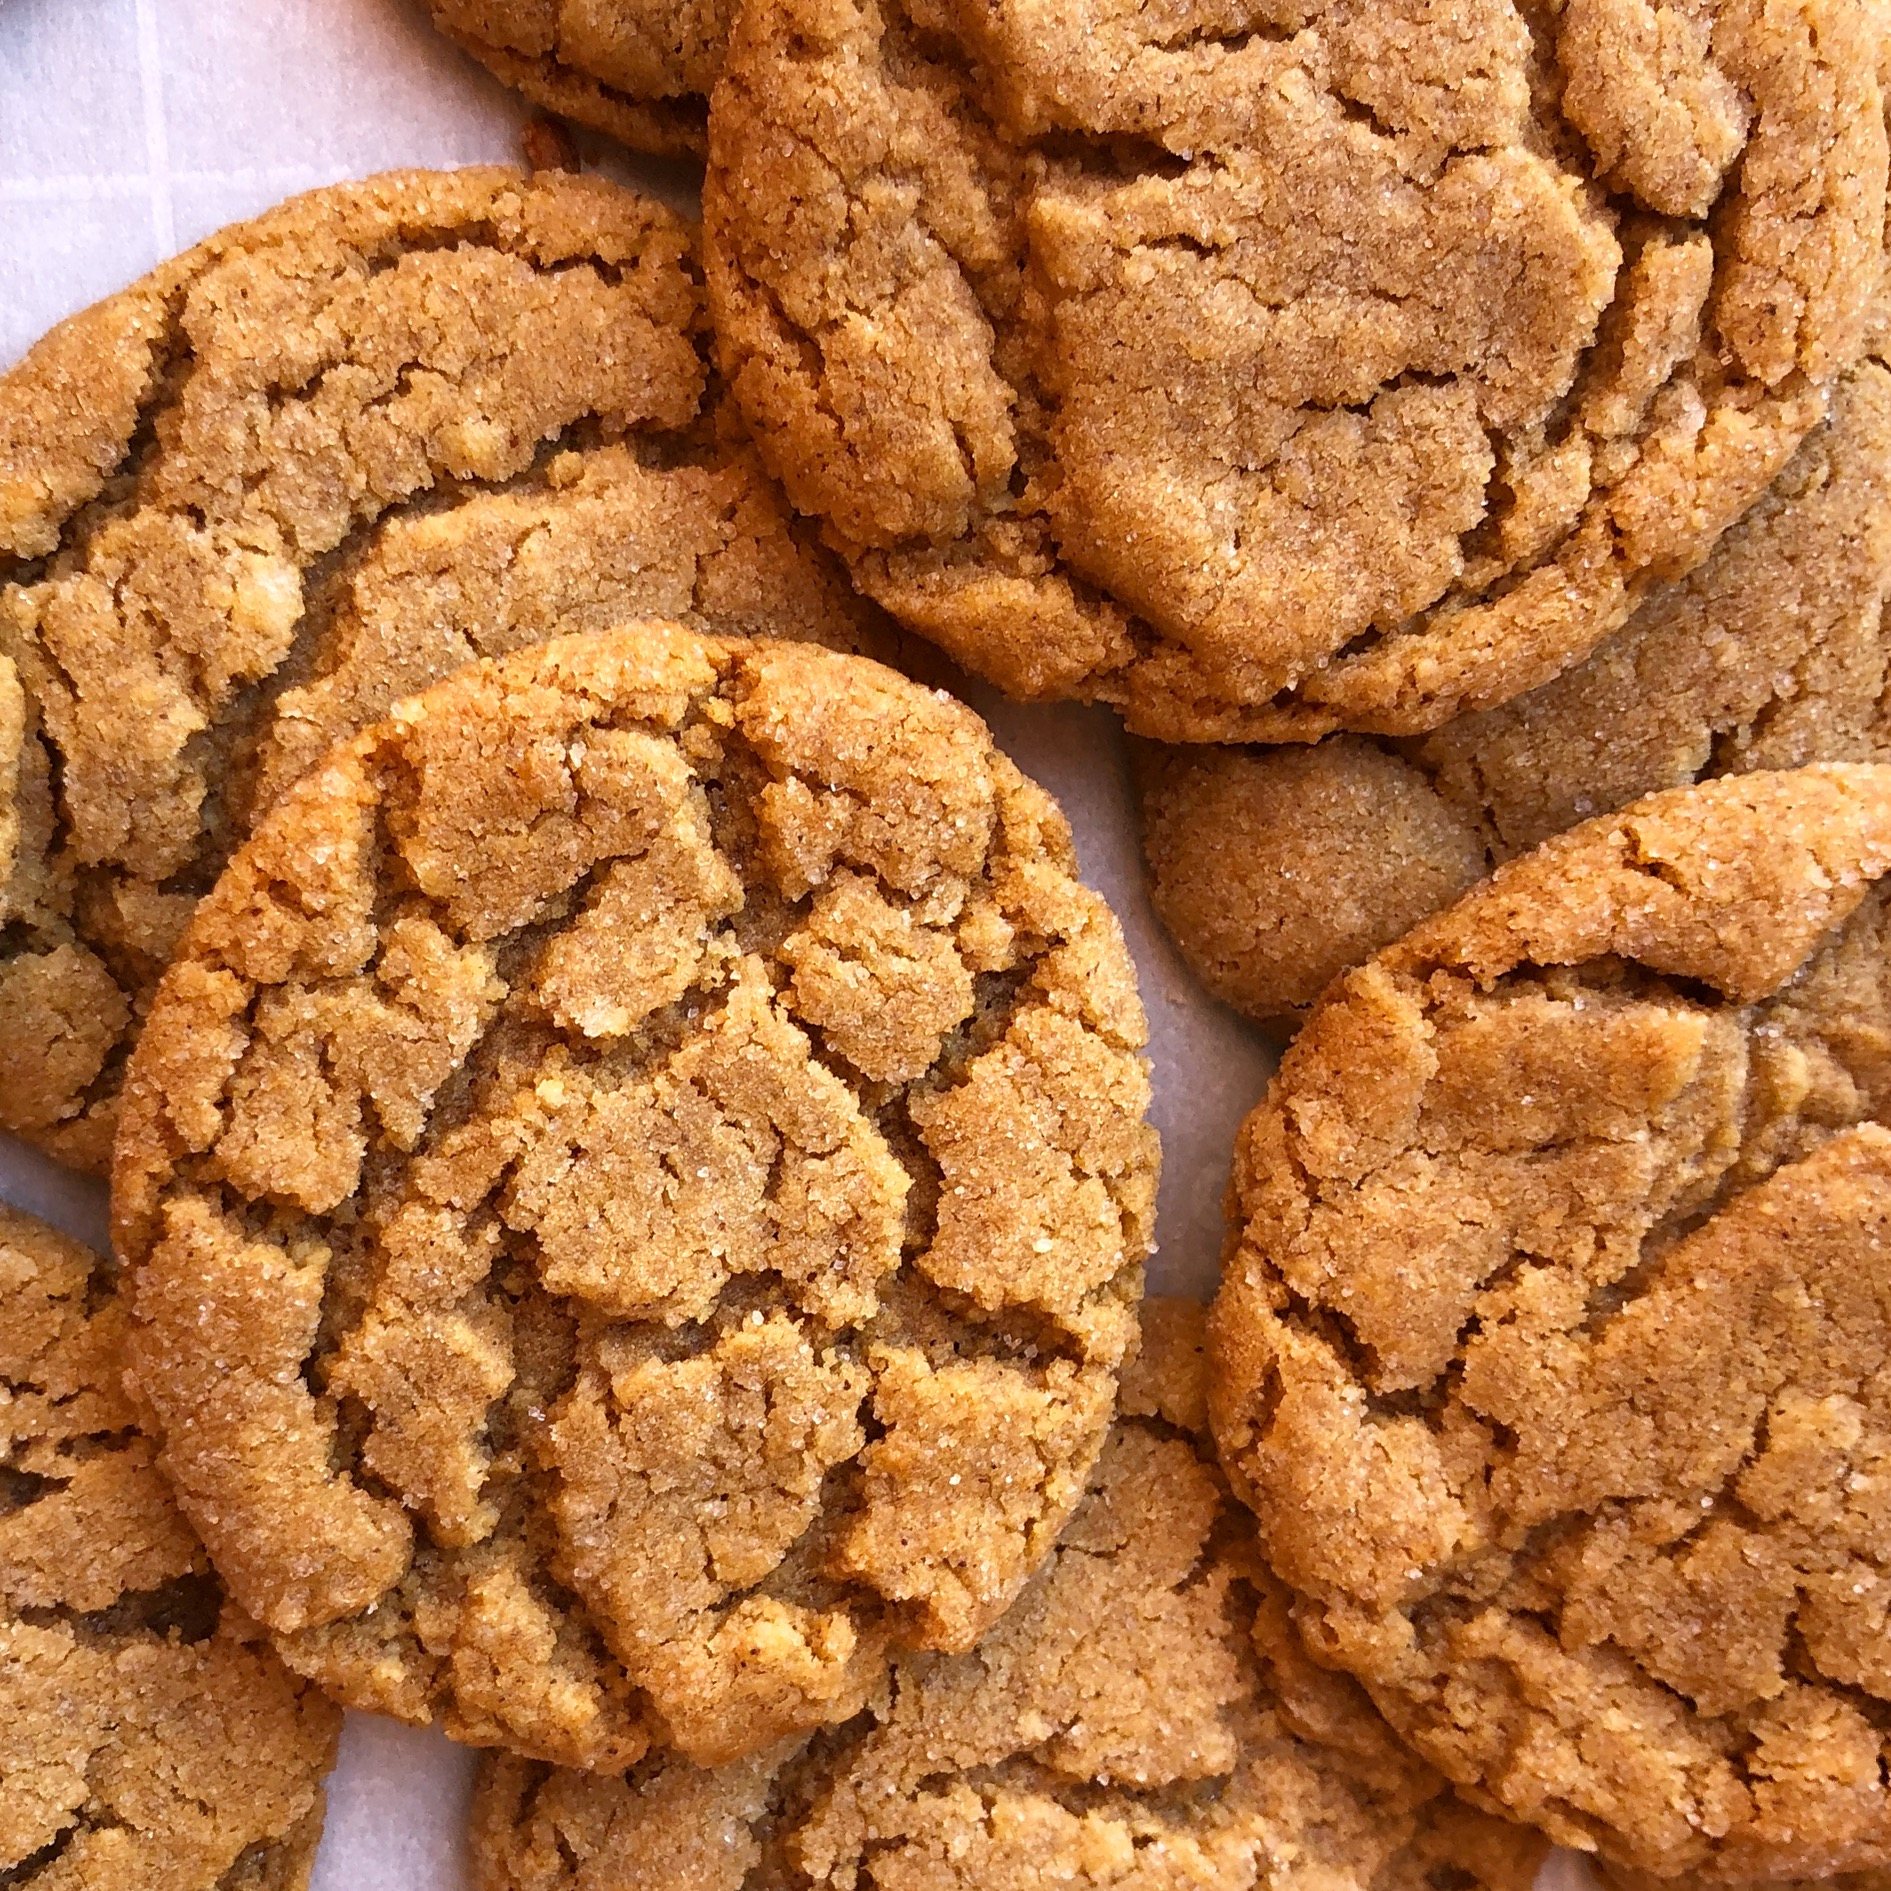 ginger cookies 1.JPG